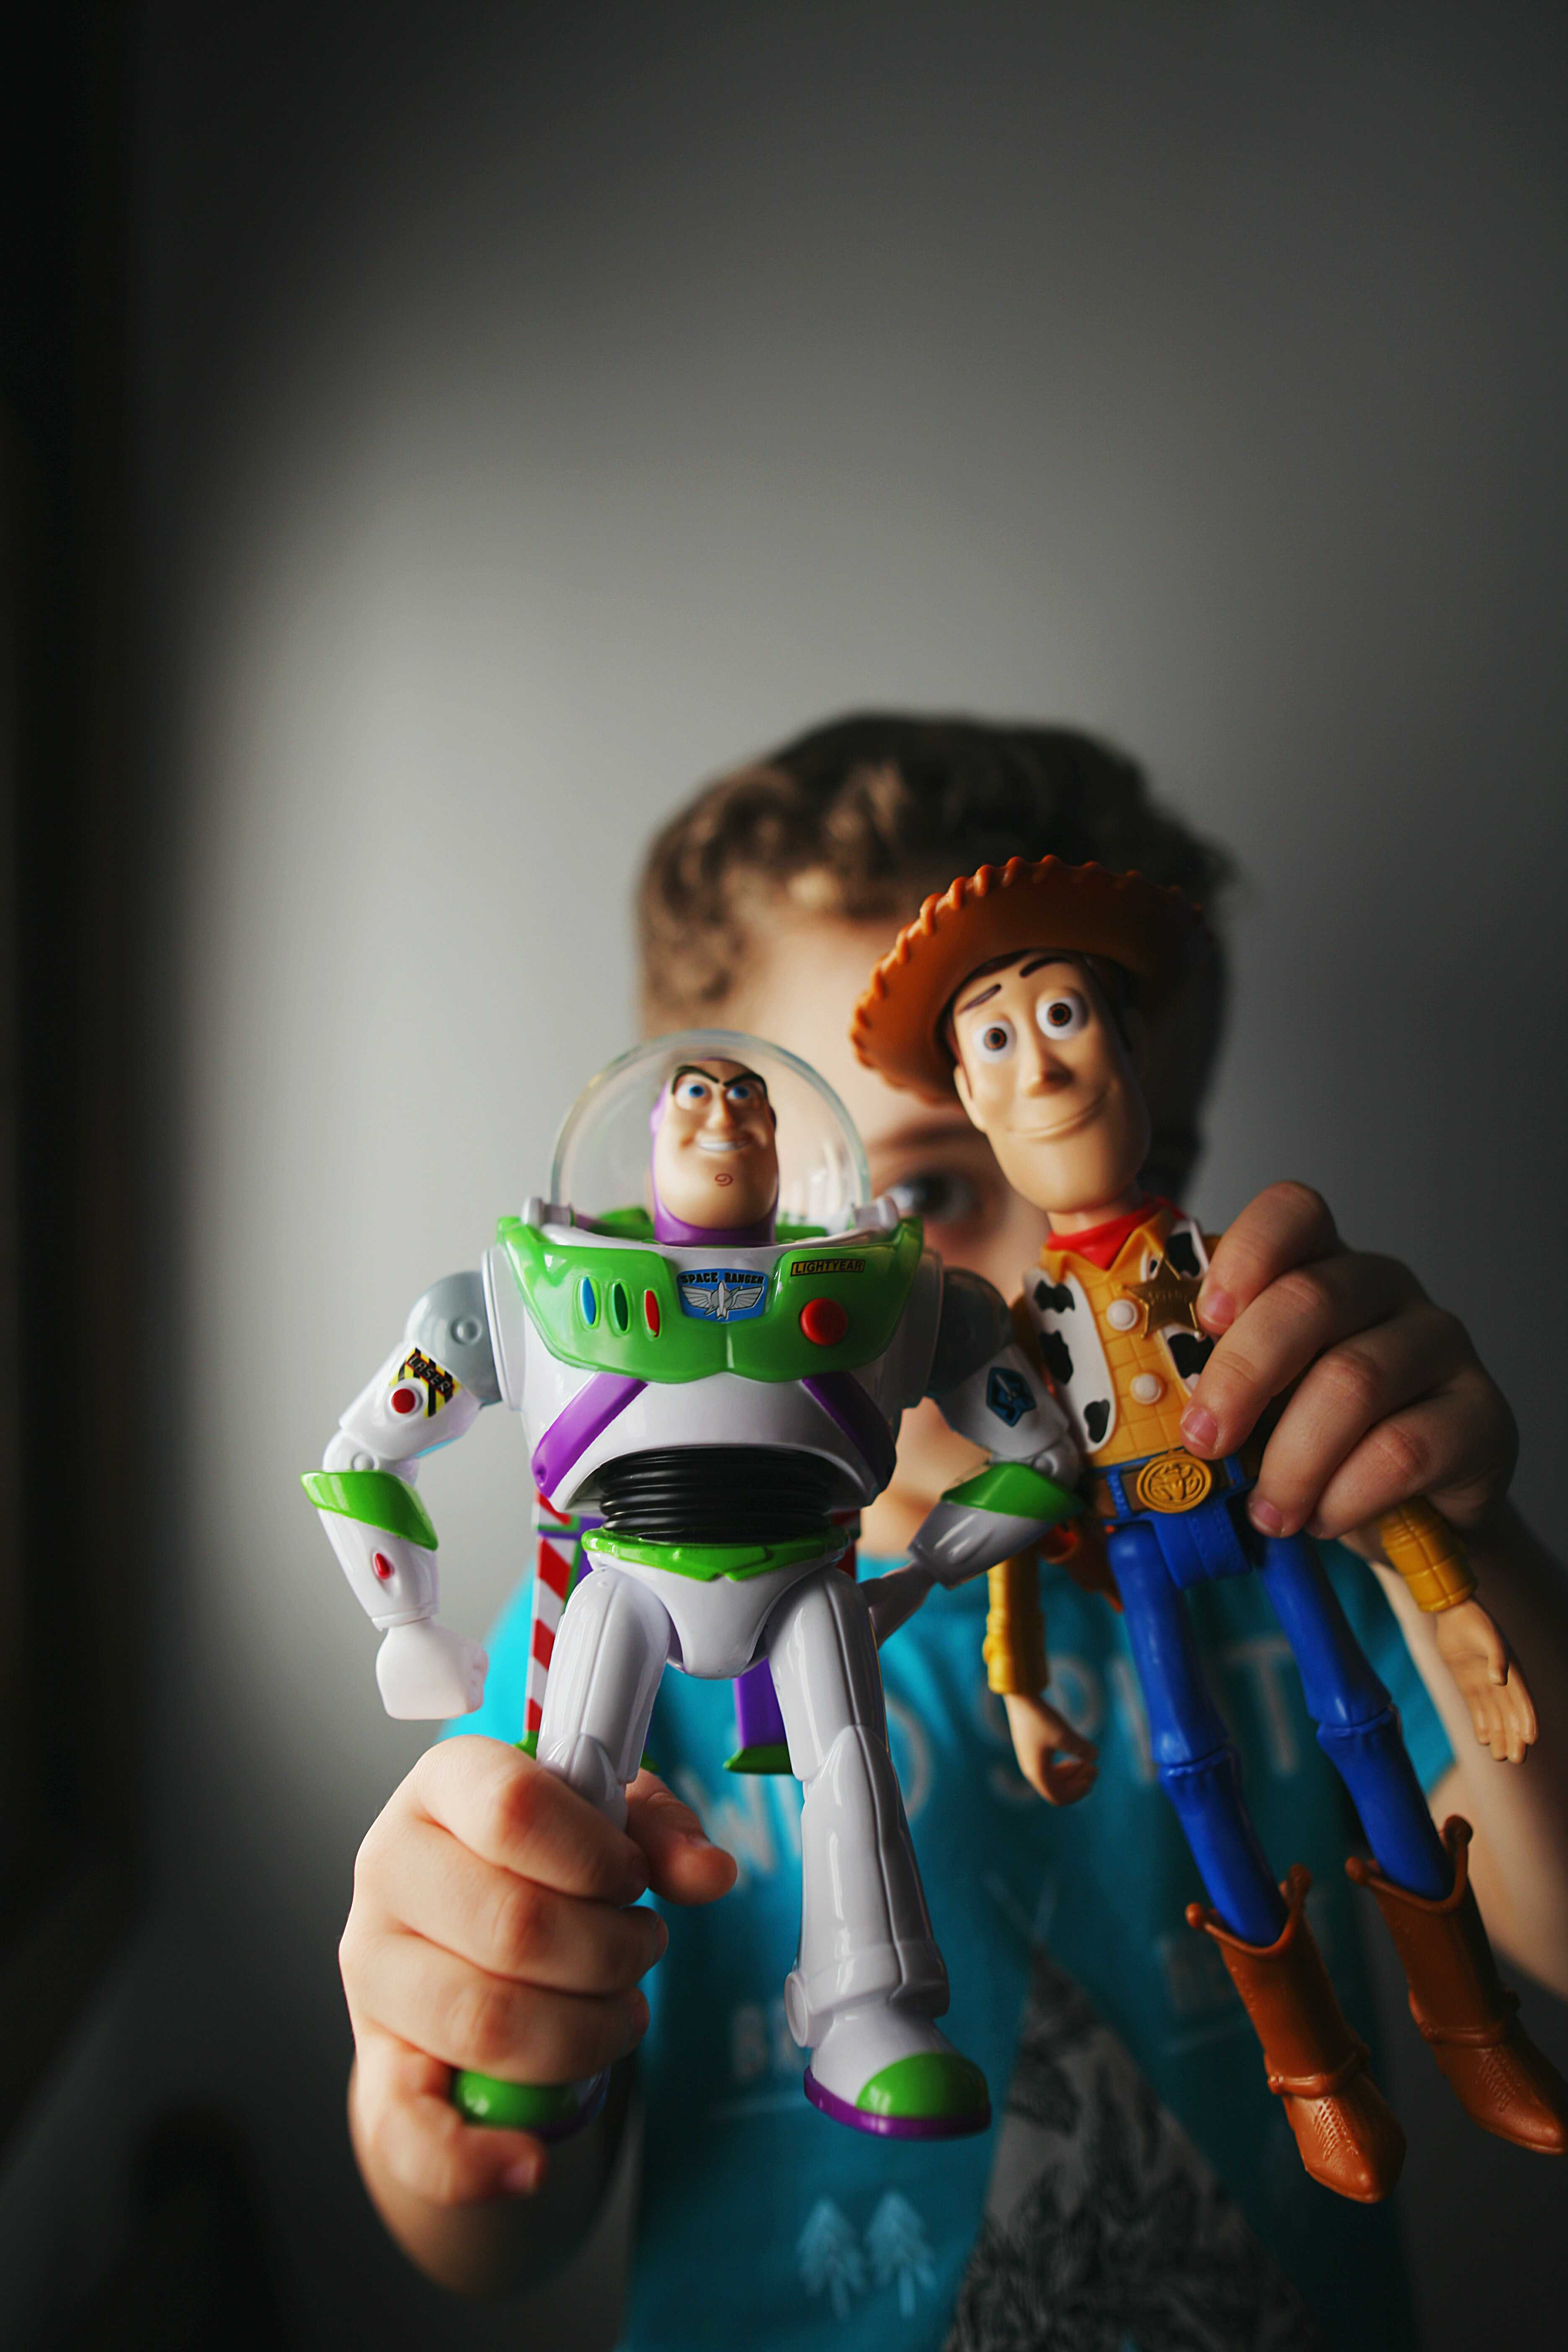 a boy with toy story toys